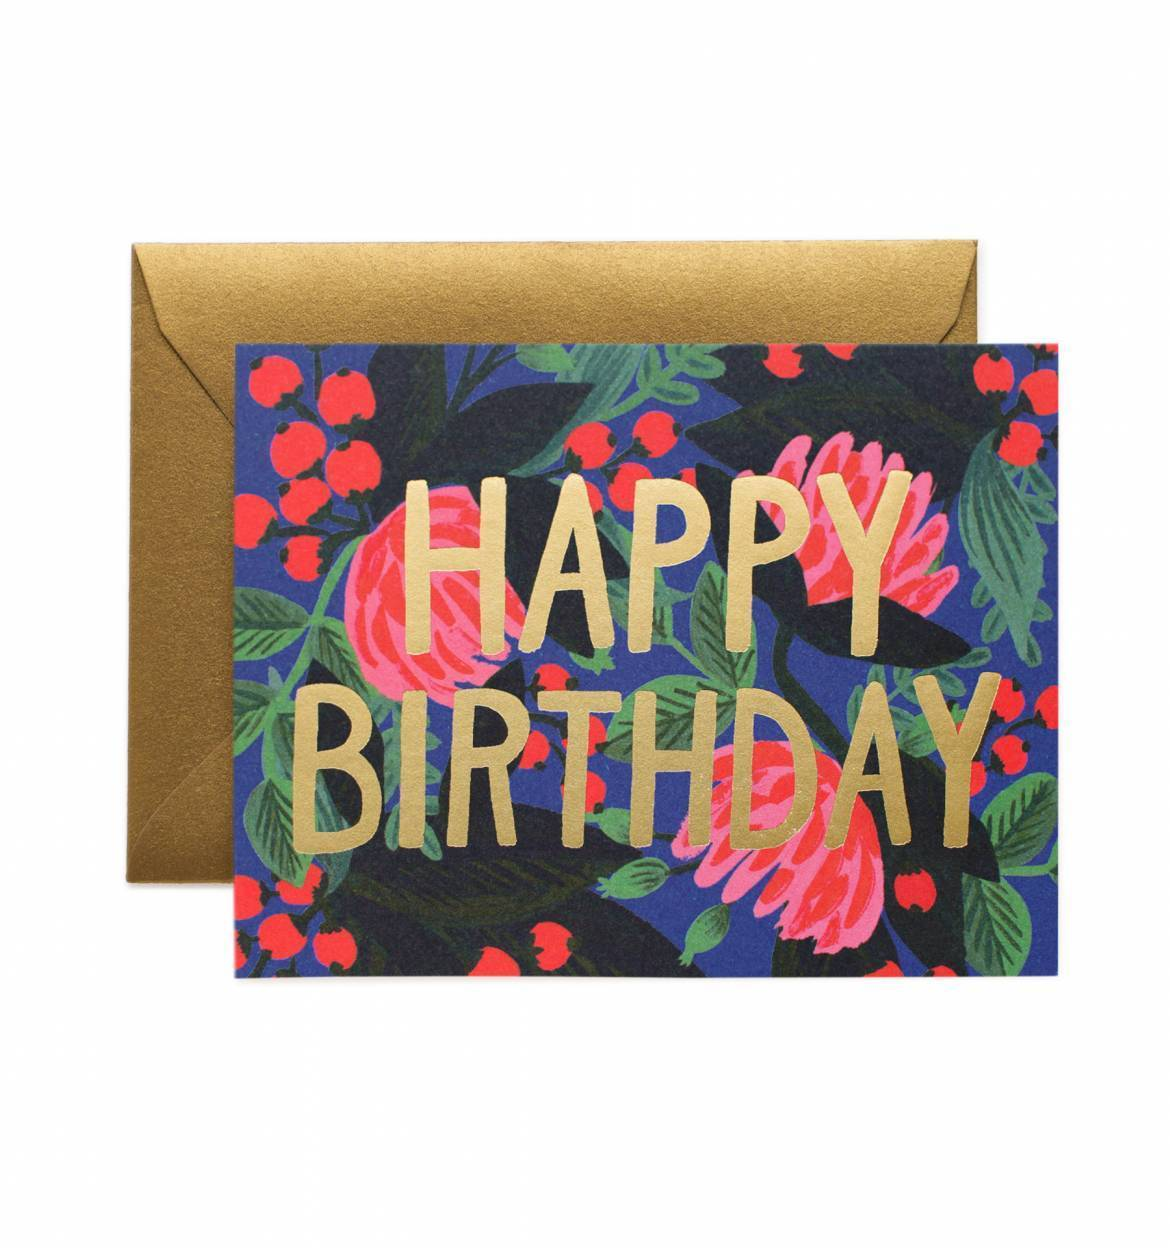 Outstanding Happy Birthday Greeting Card Treloar School College Personalised Birthday Cards Paralily Jamesorg